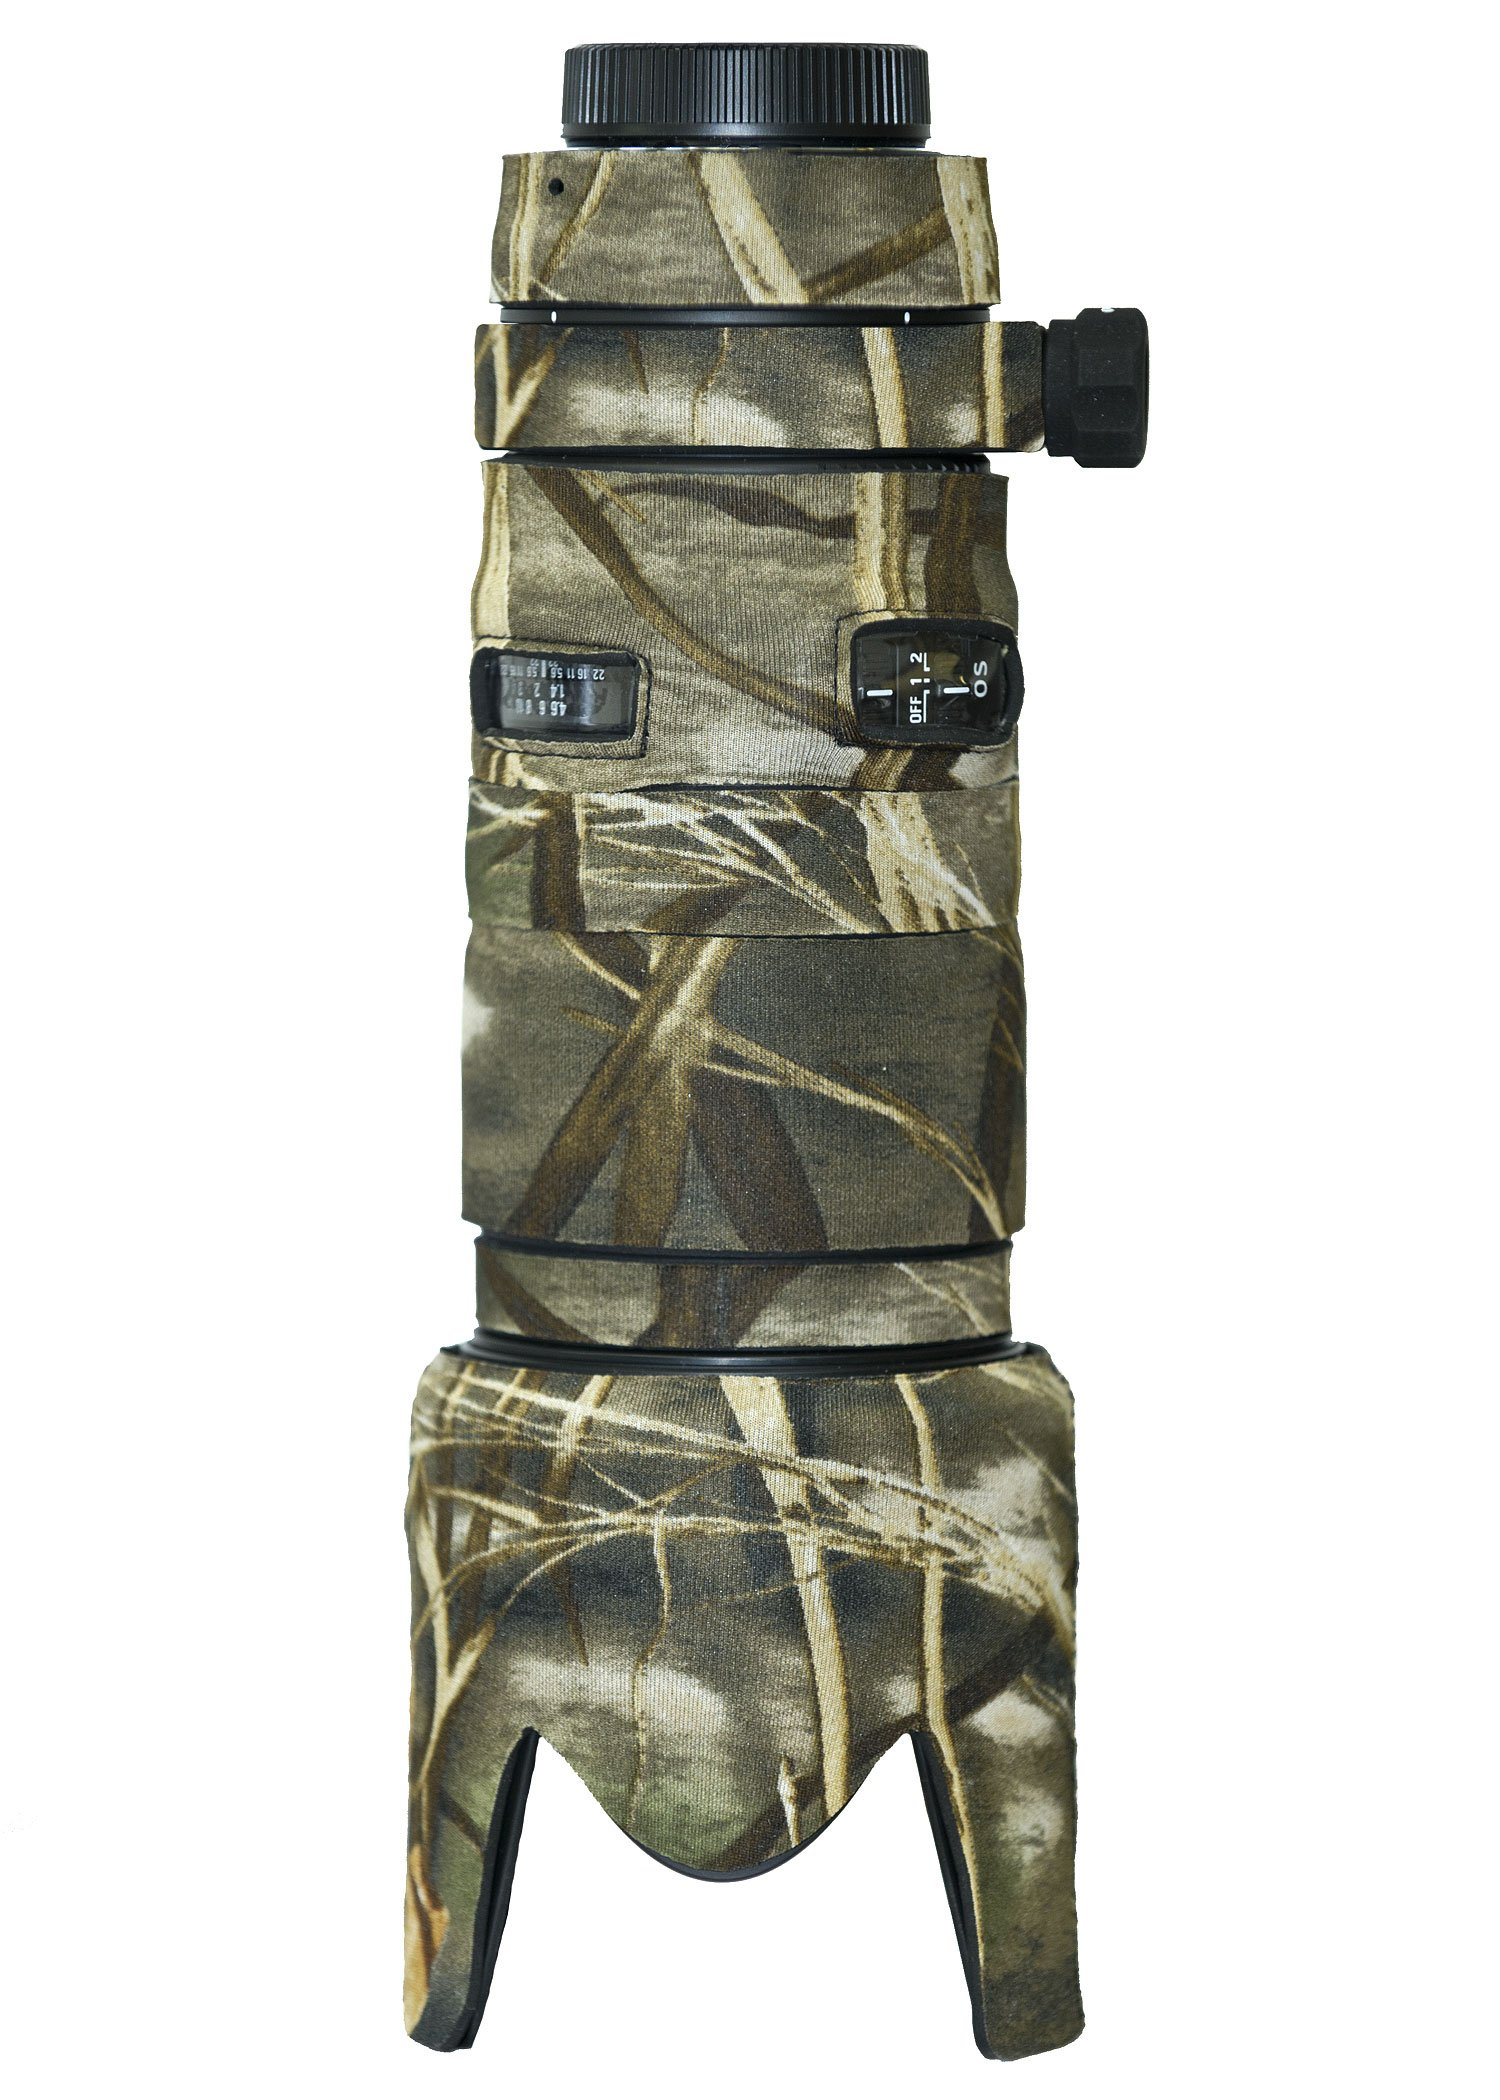 LensCoat Sigma 70-200 2.8 DG OS Lens Cover (Realtree Max4 HD) camouflage neoprene camera lens protection sleeve LCS70200OSM4